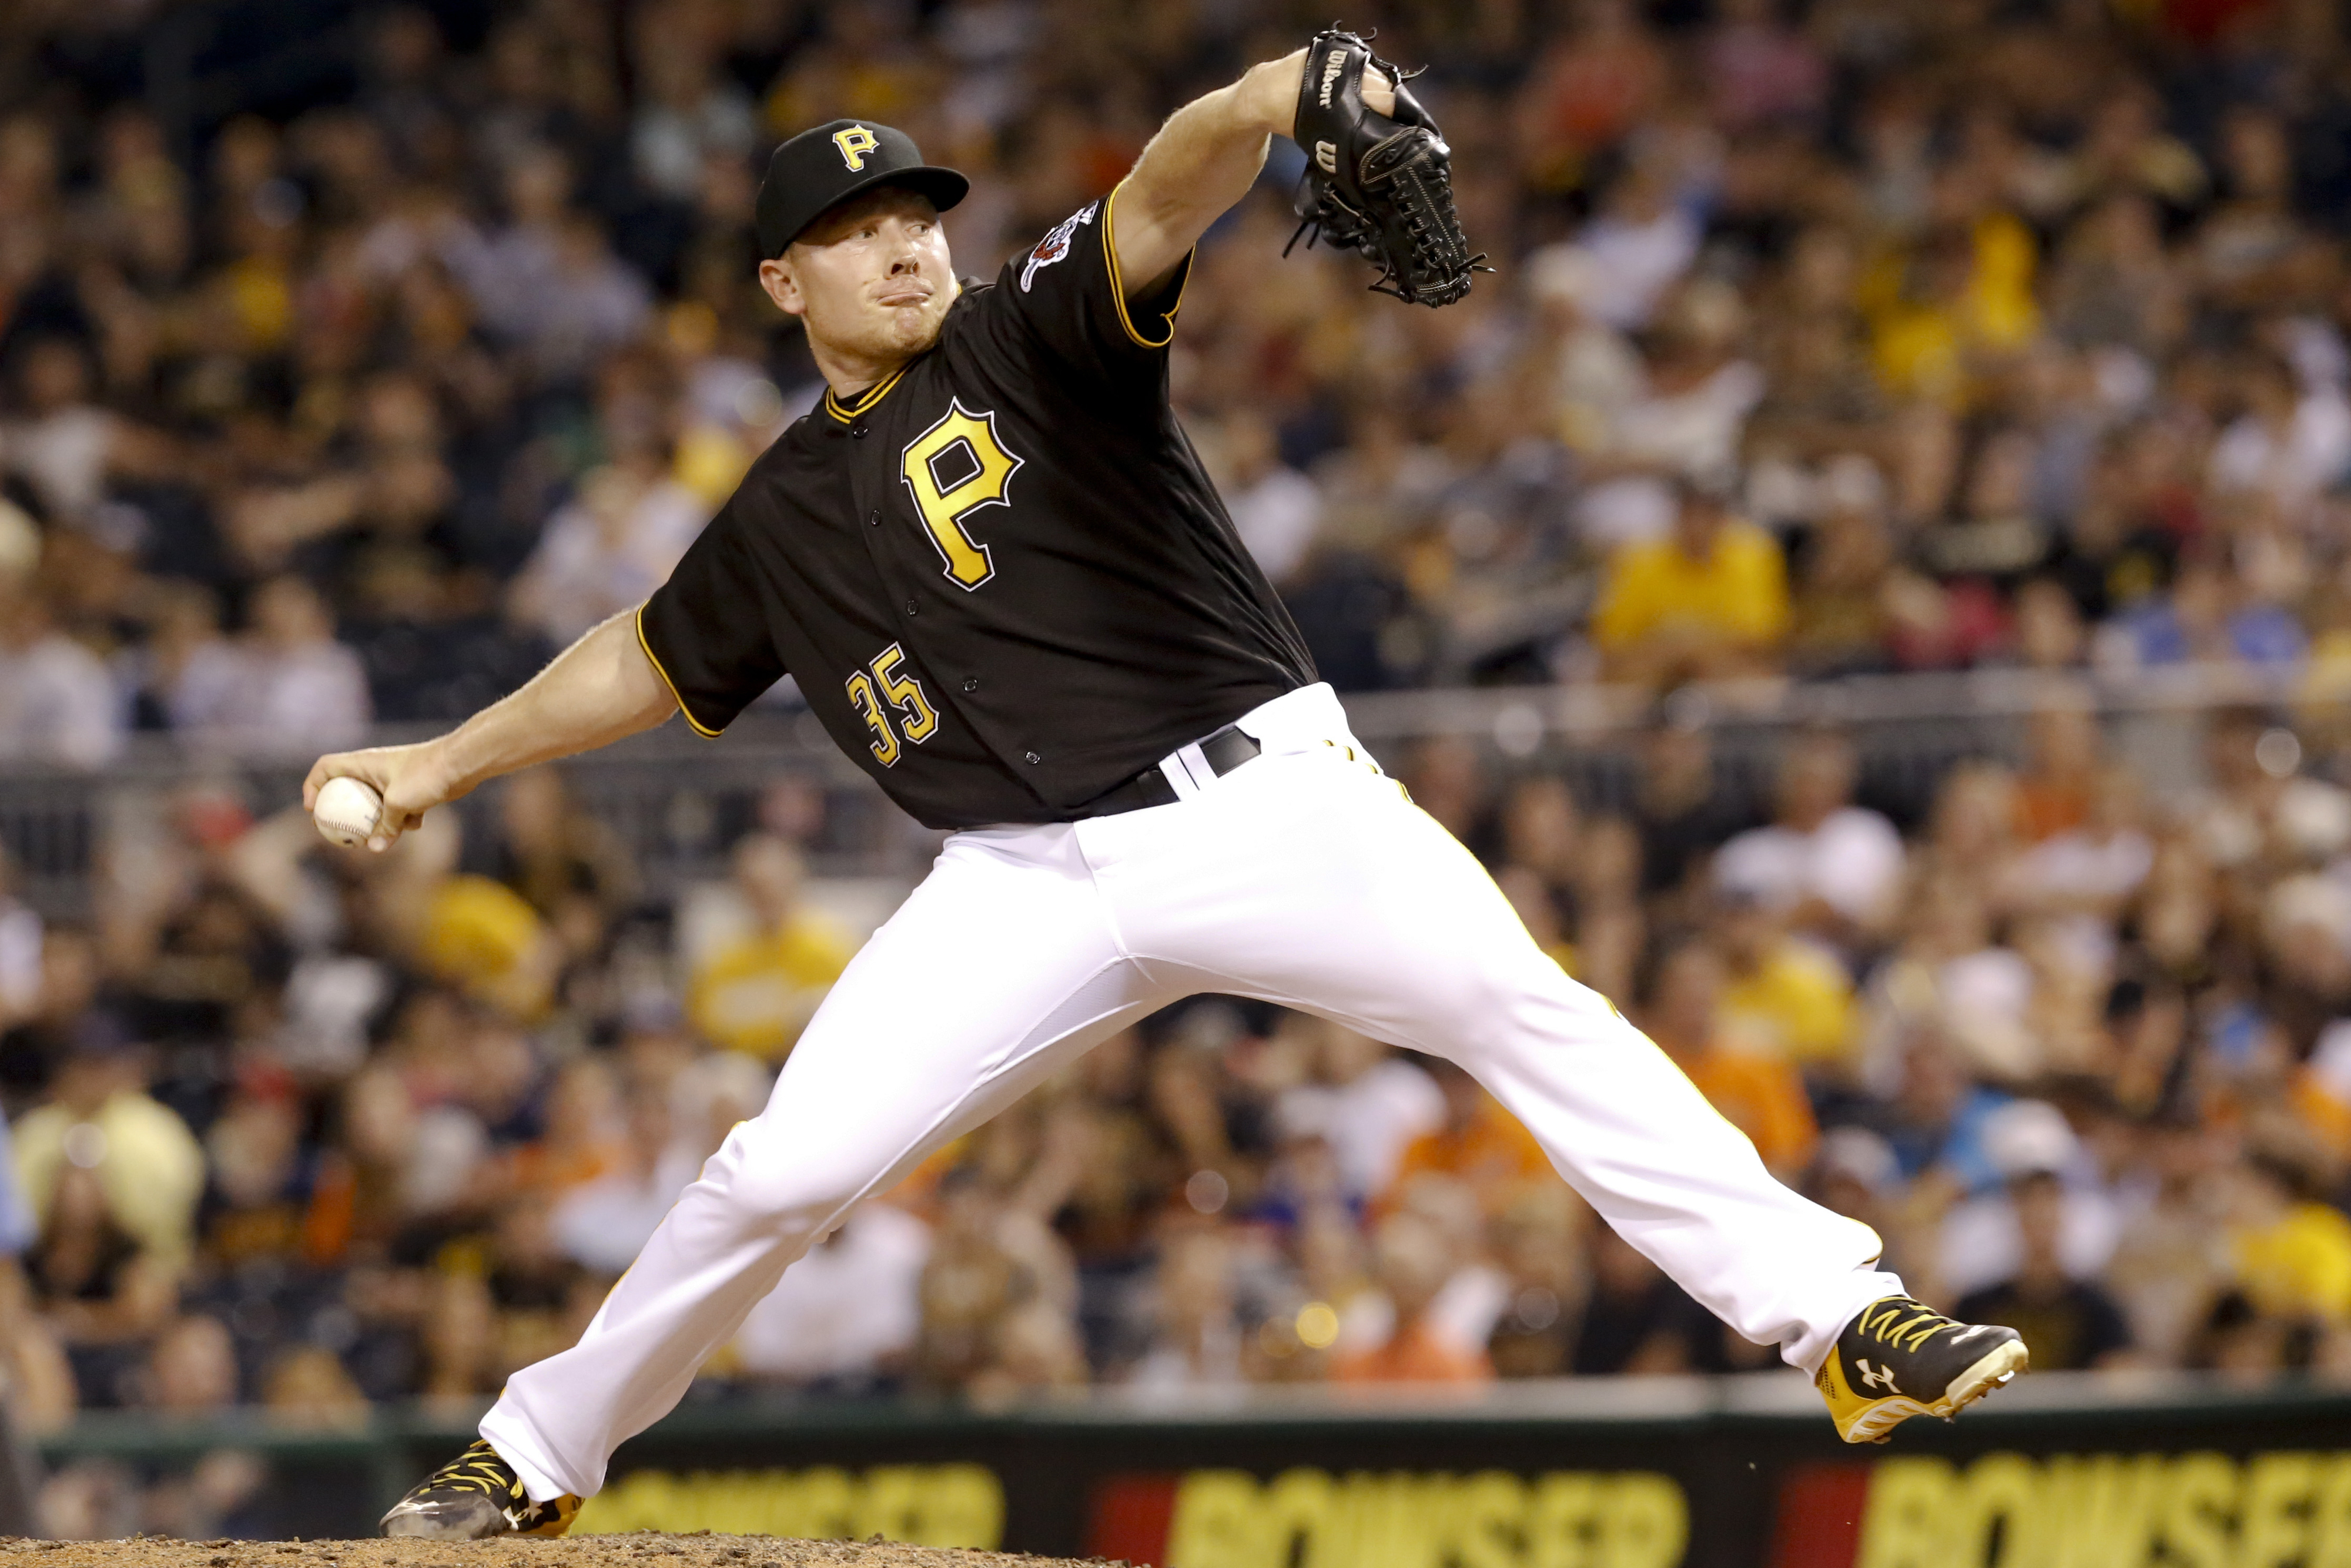 FILE - In this June 20, 2016, file photo, Pittsburgh Pirates relief pitcher Mark Melancon throws against the San Francisco Giants during a baseball game in Pittsburgh. Washington sent reliever Felipe Rivero and pitching prospect Taylor Hearn to the Pirate